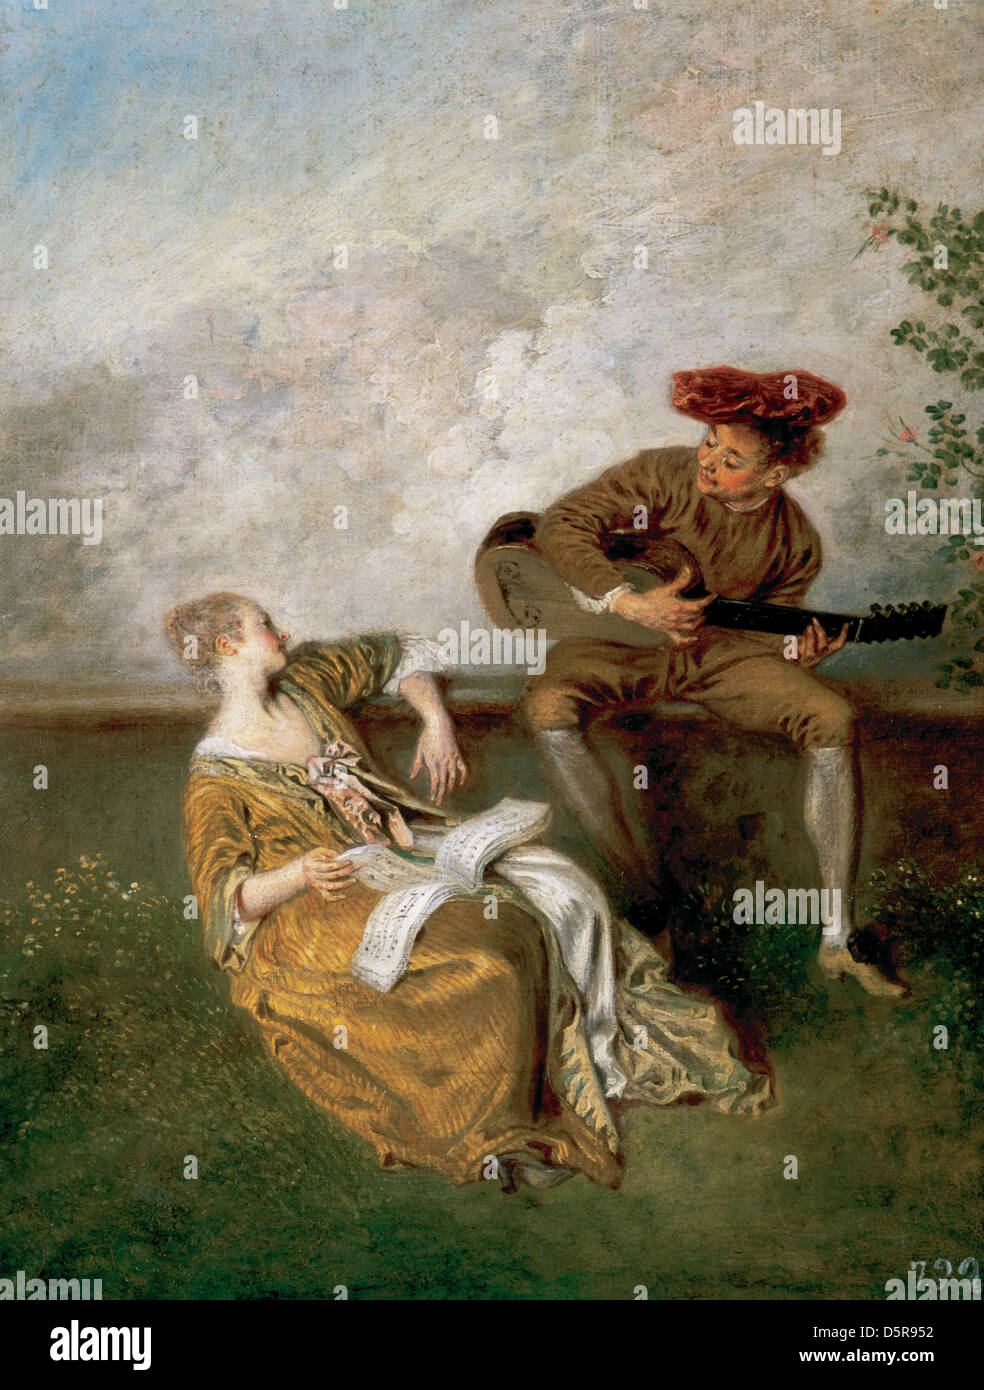 Jean-Antoine Watteau (1684-1721). French painter. The Singing Lesson, 1717-18. Guitarist and Young Lady with a Music - Stock Image